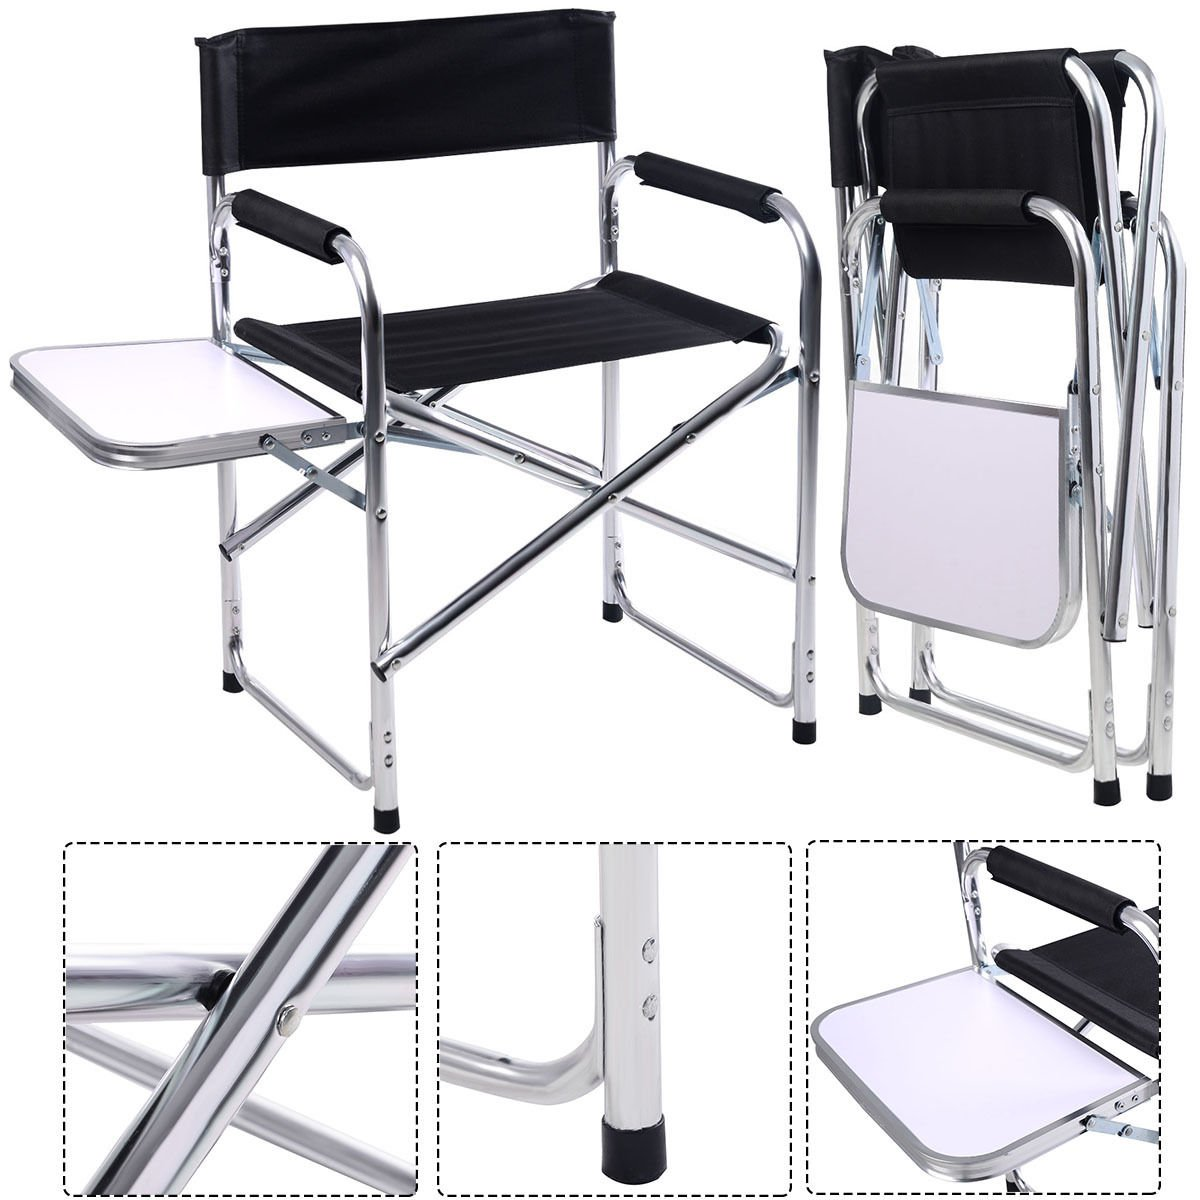 GHP Aluminum Frame Folding Director's Chair with Side Table 21 3/5 x 18 1/2 x 30 3/4